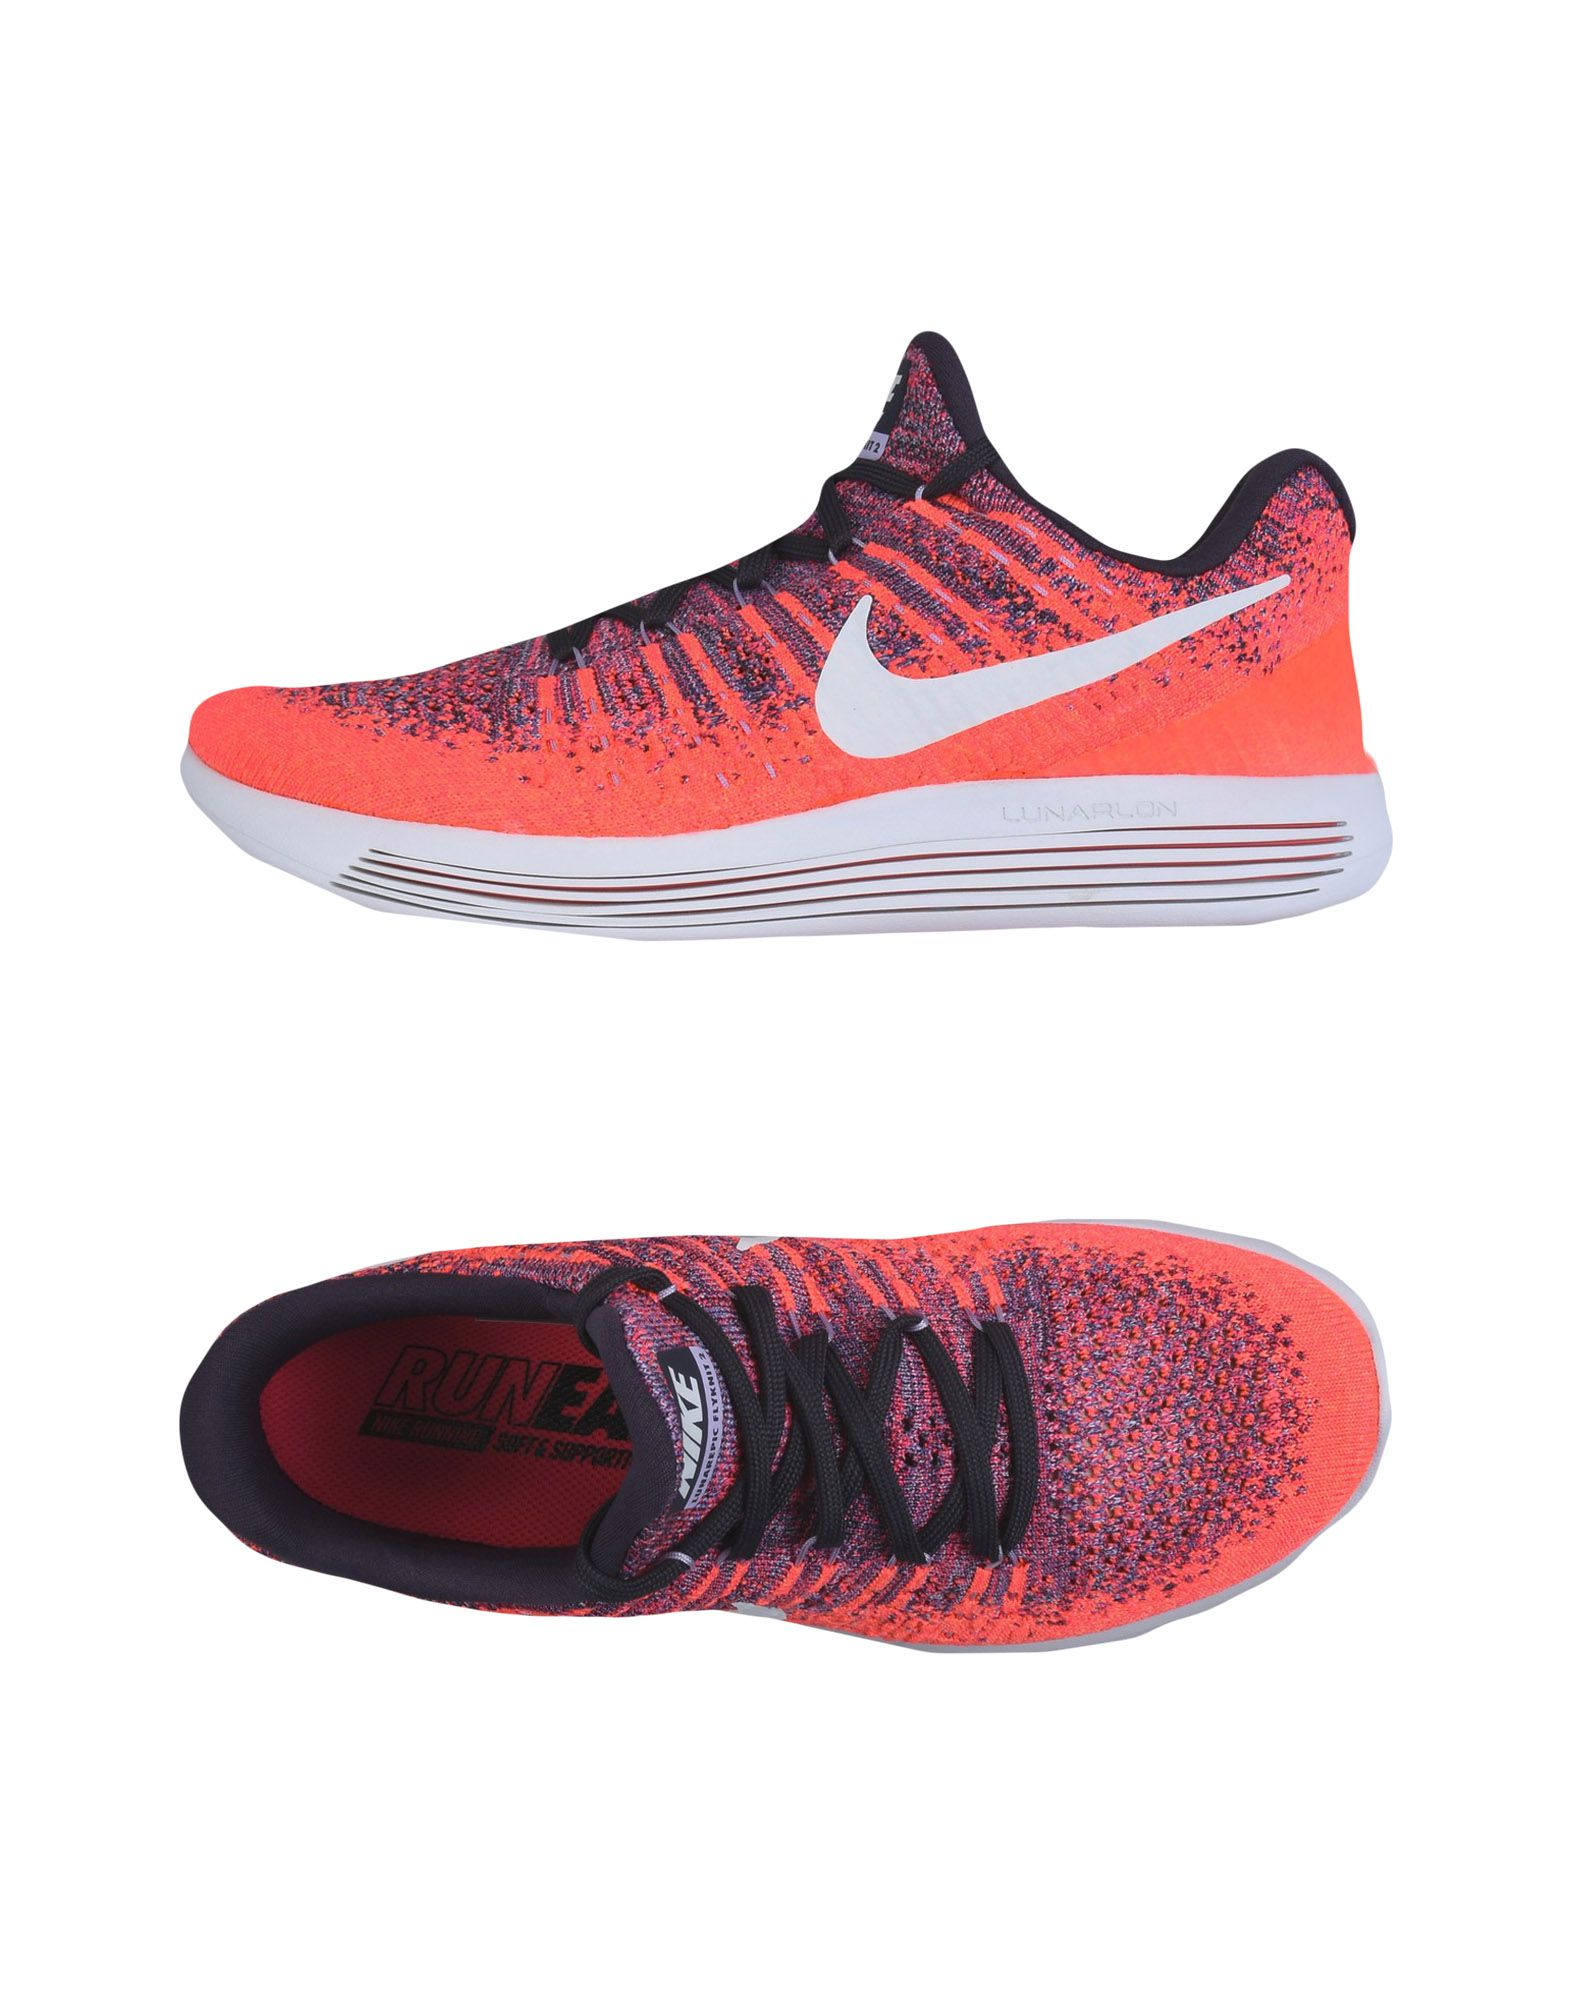 best sneakers 2d401 2cf85 ... where to buy nike lunarepic low flyknit 2 sneakers women nike sneakers  online on yoox latvia